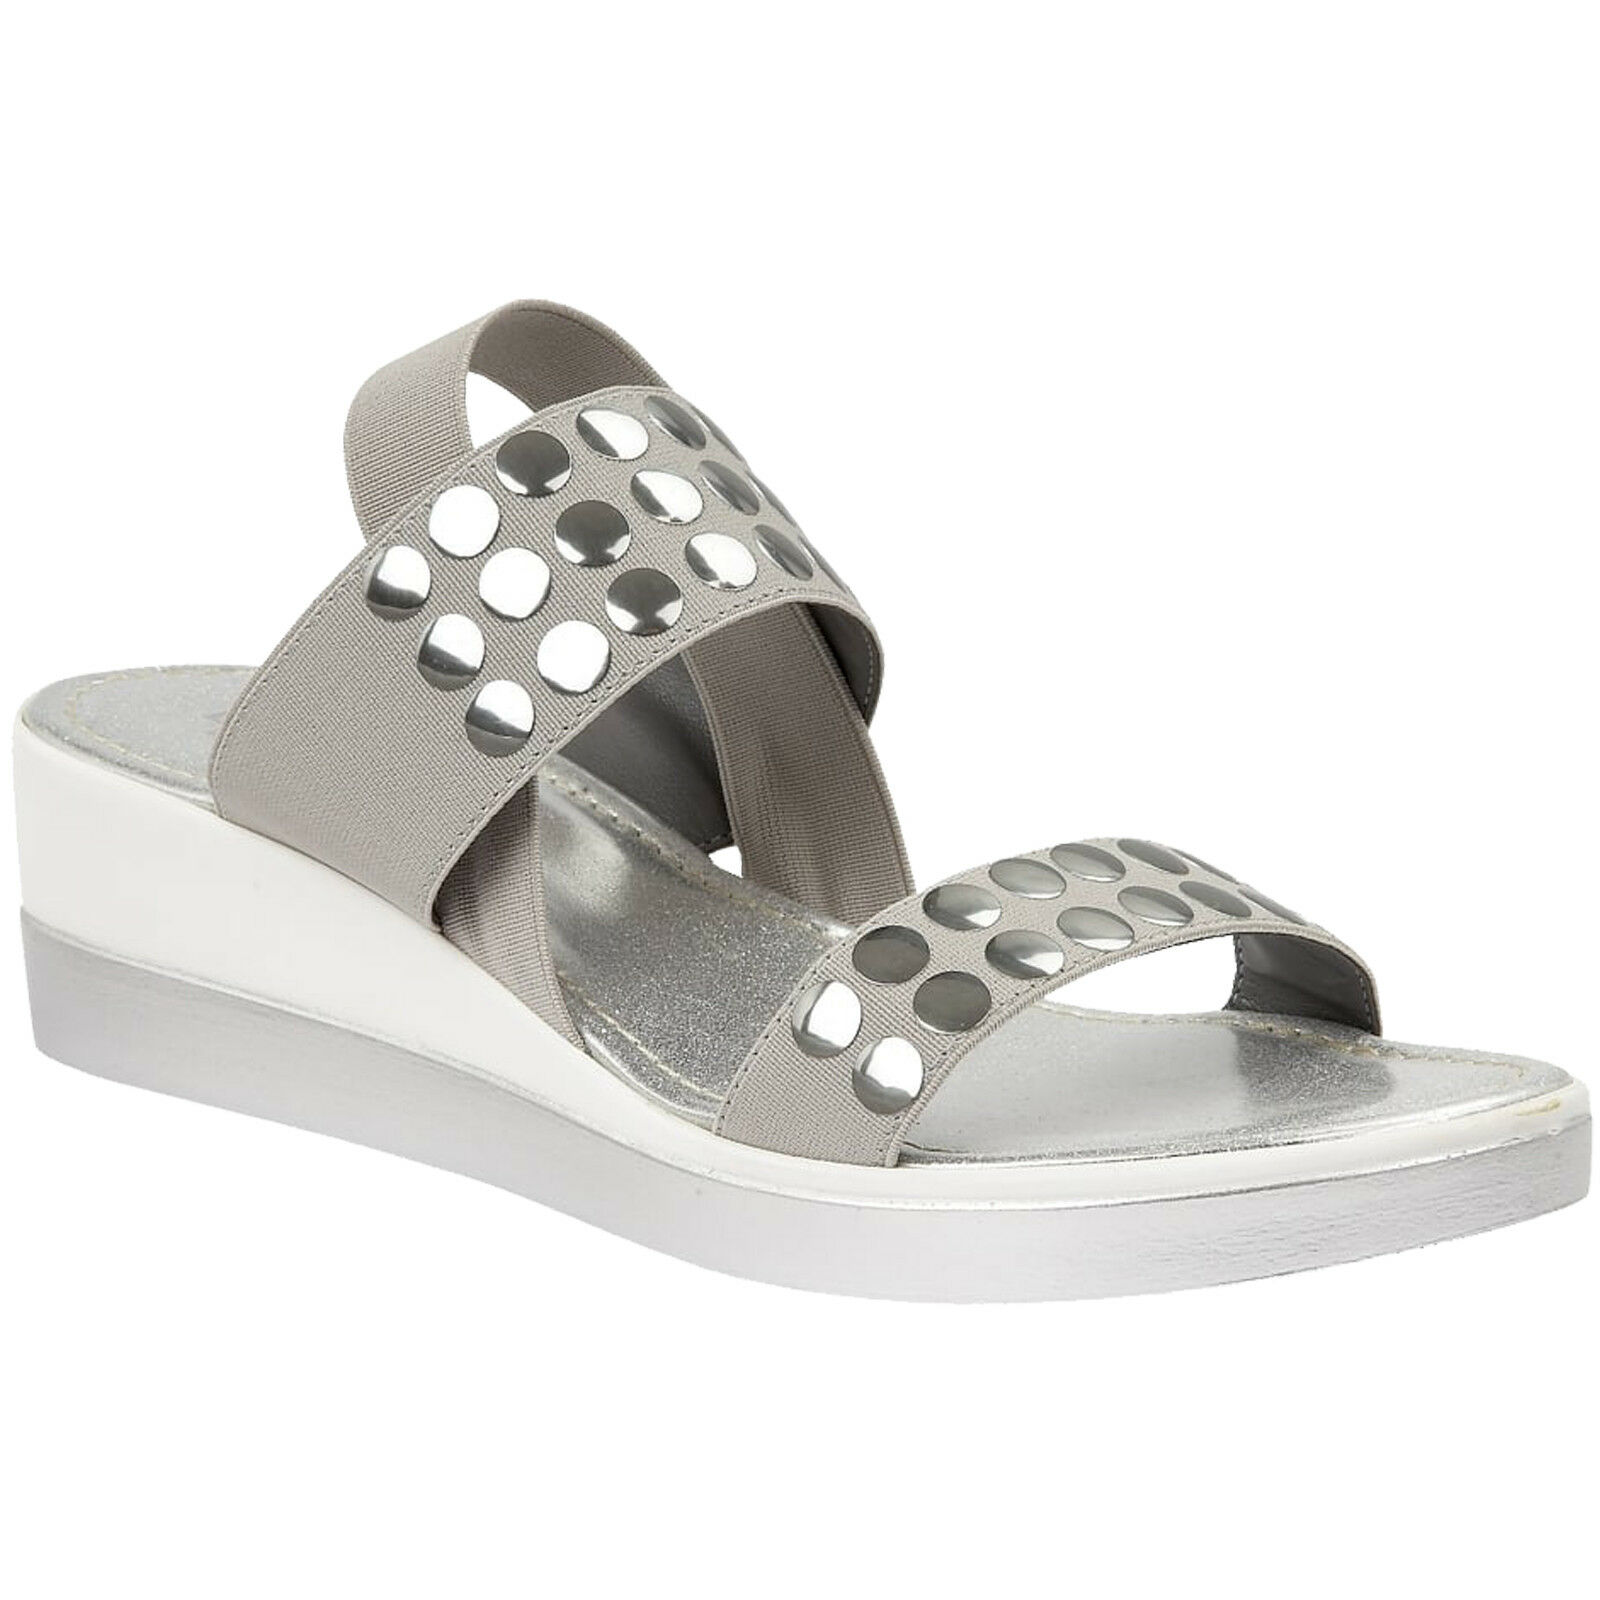 LADIES LOTUS ZELLAND gris PEWTER ELASTIC STRAP WEDGE SANDALS